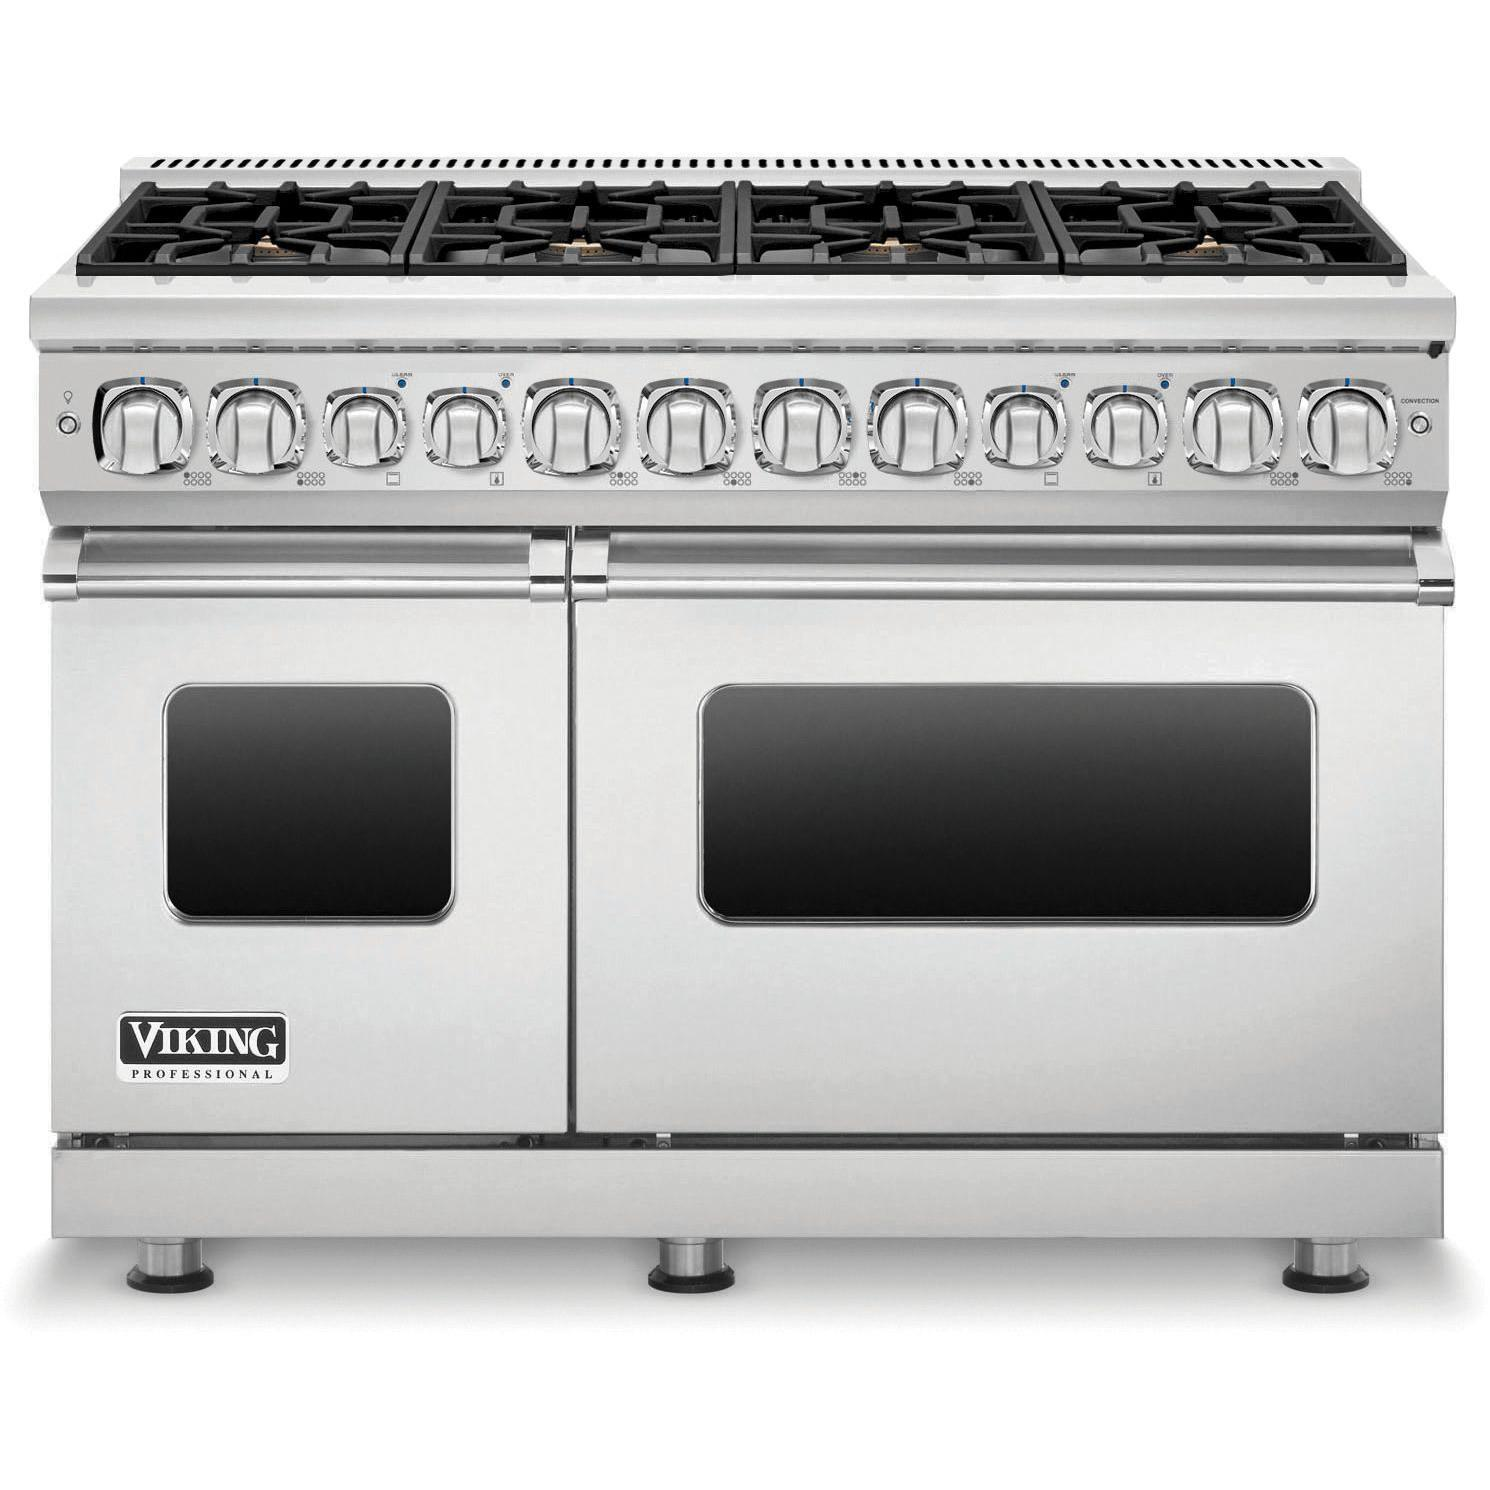 Viking Professional 7 Series 48 Inch 8 Burner Natural Gas Dual Fuel Range Stainless Steel Vdr7488bss Convection Cooking Open Concept Kitchen Oven Racks